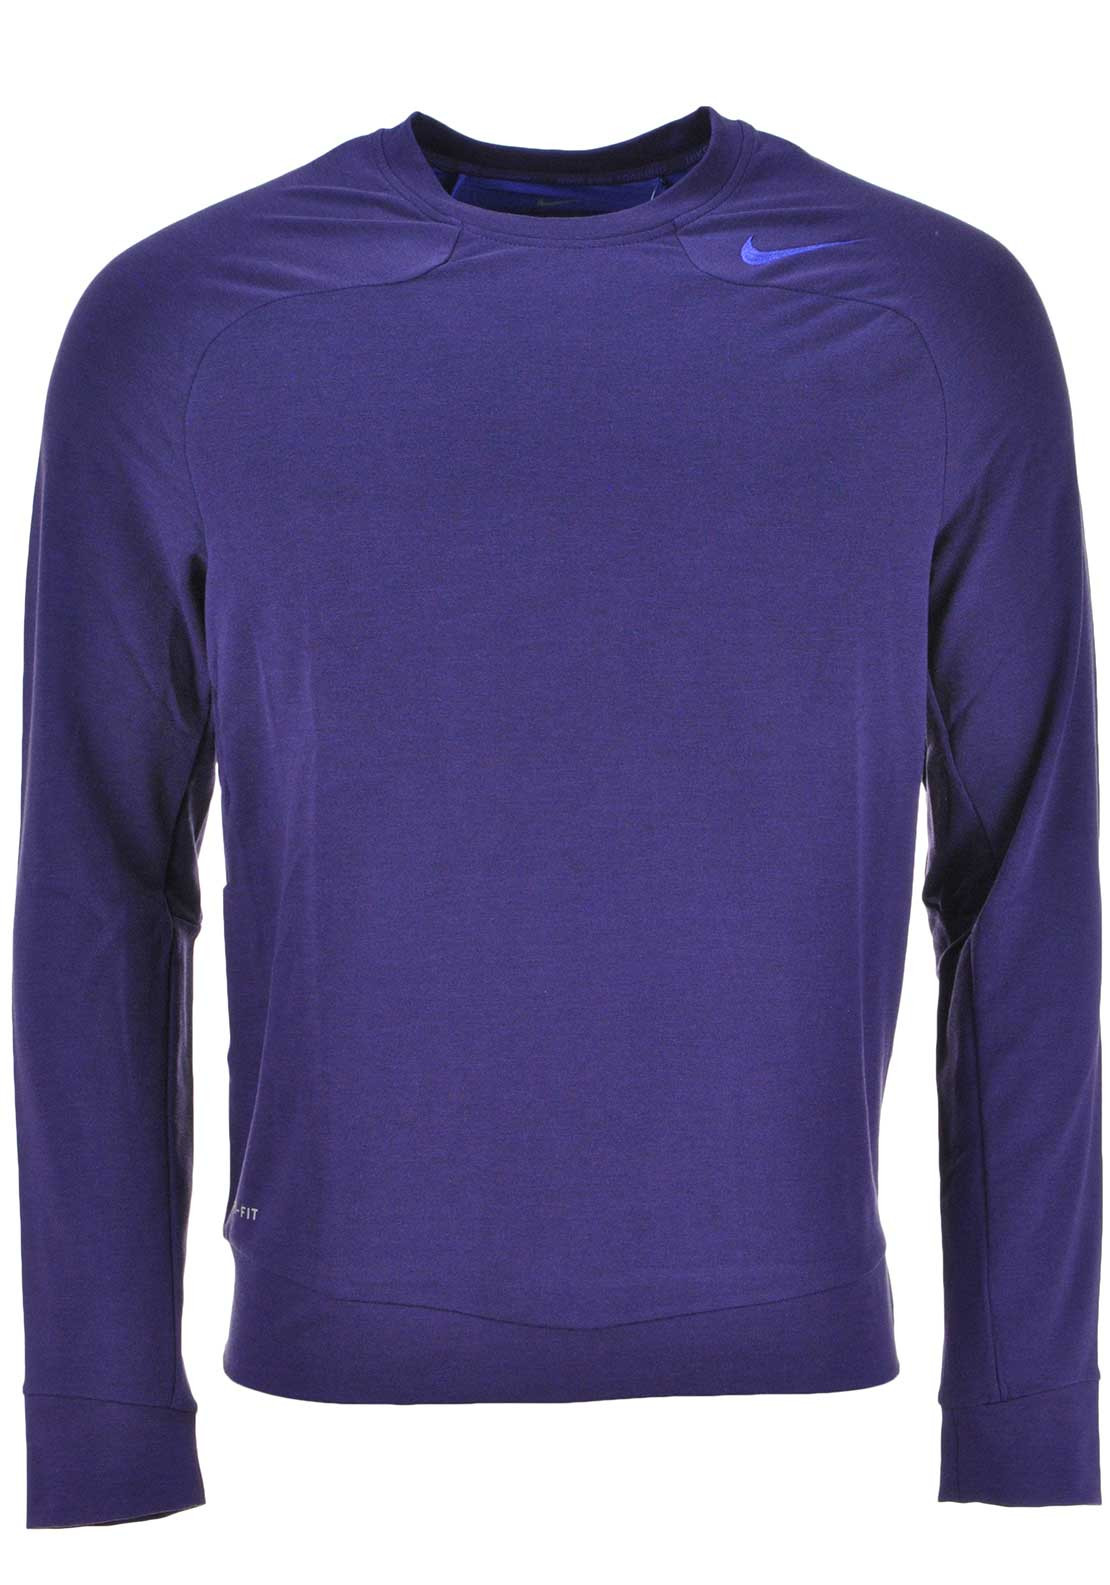 Nike Mens Dri-Fit Touch Fleece Crew Neck Training Top, Persian Violet